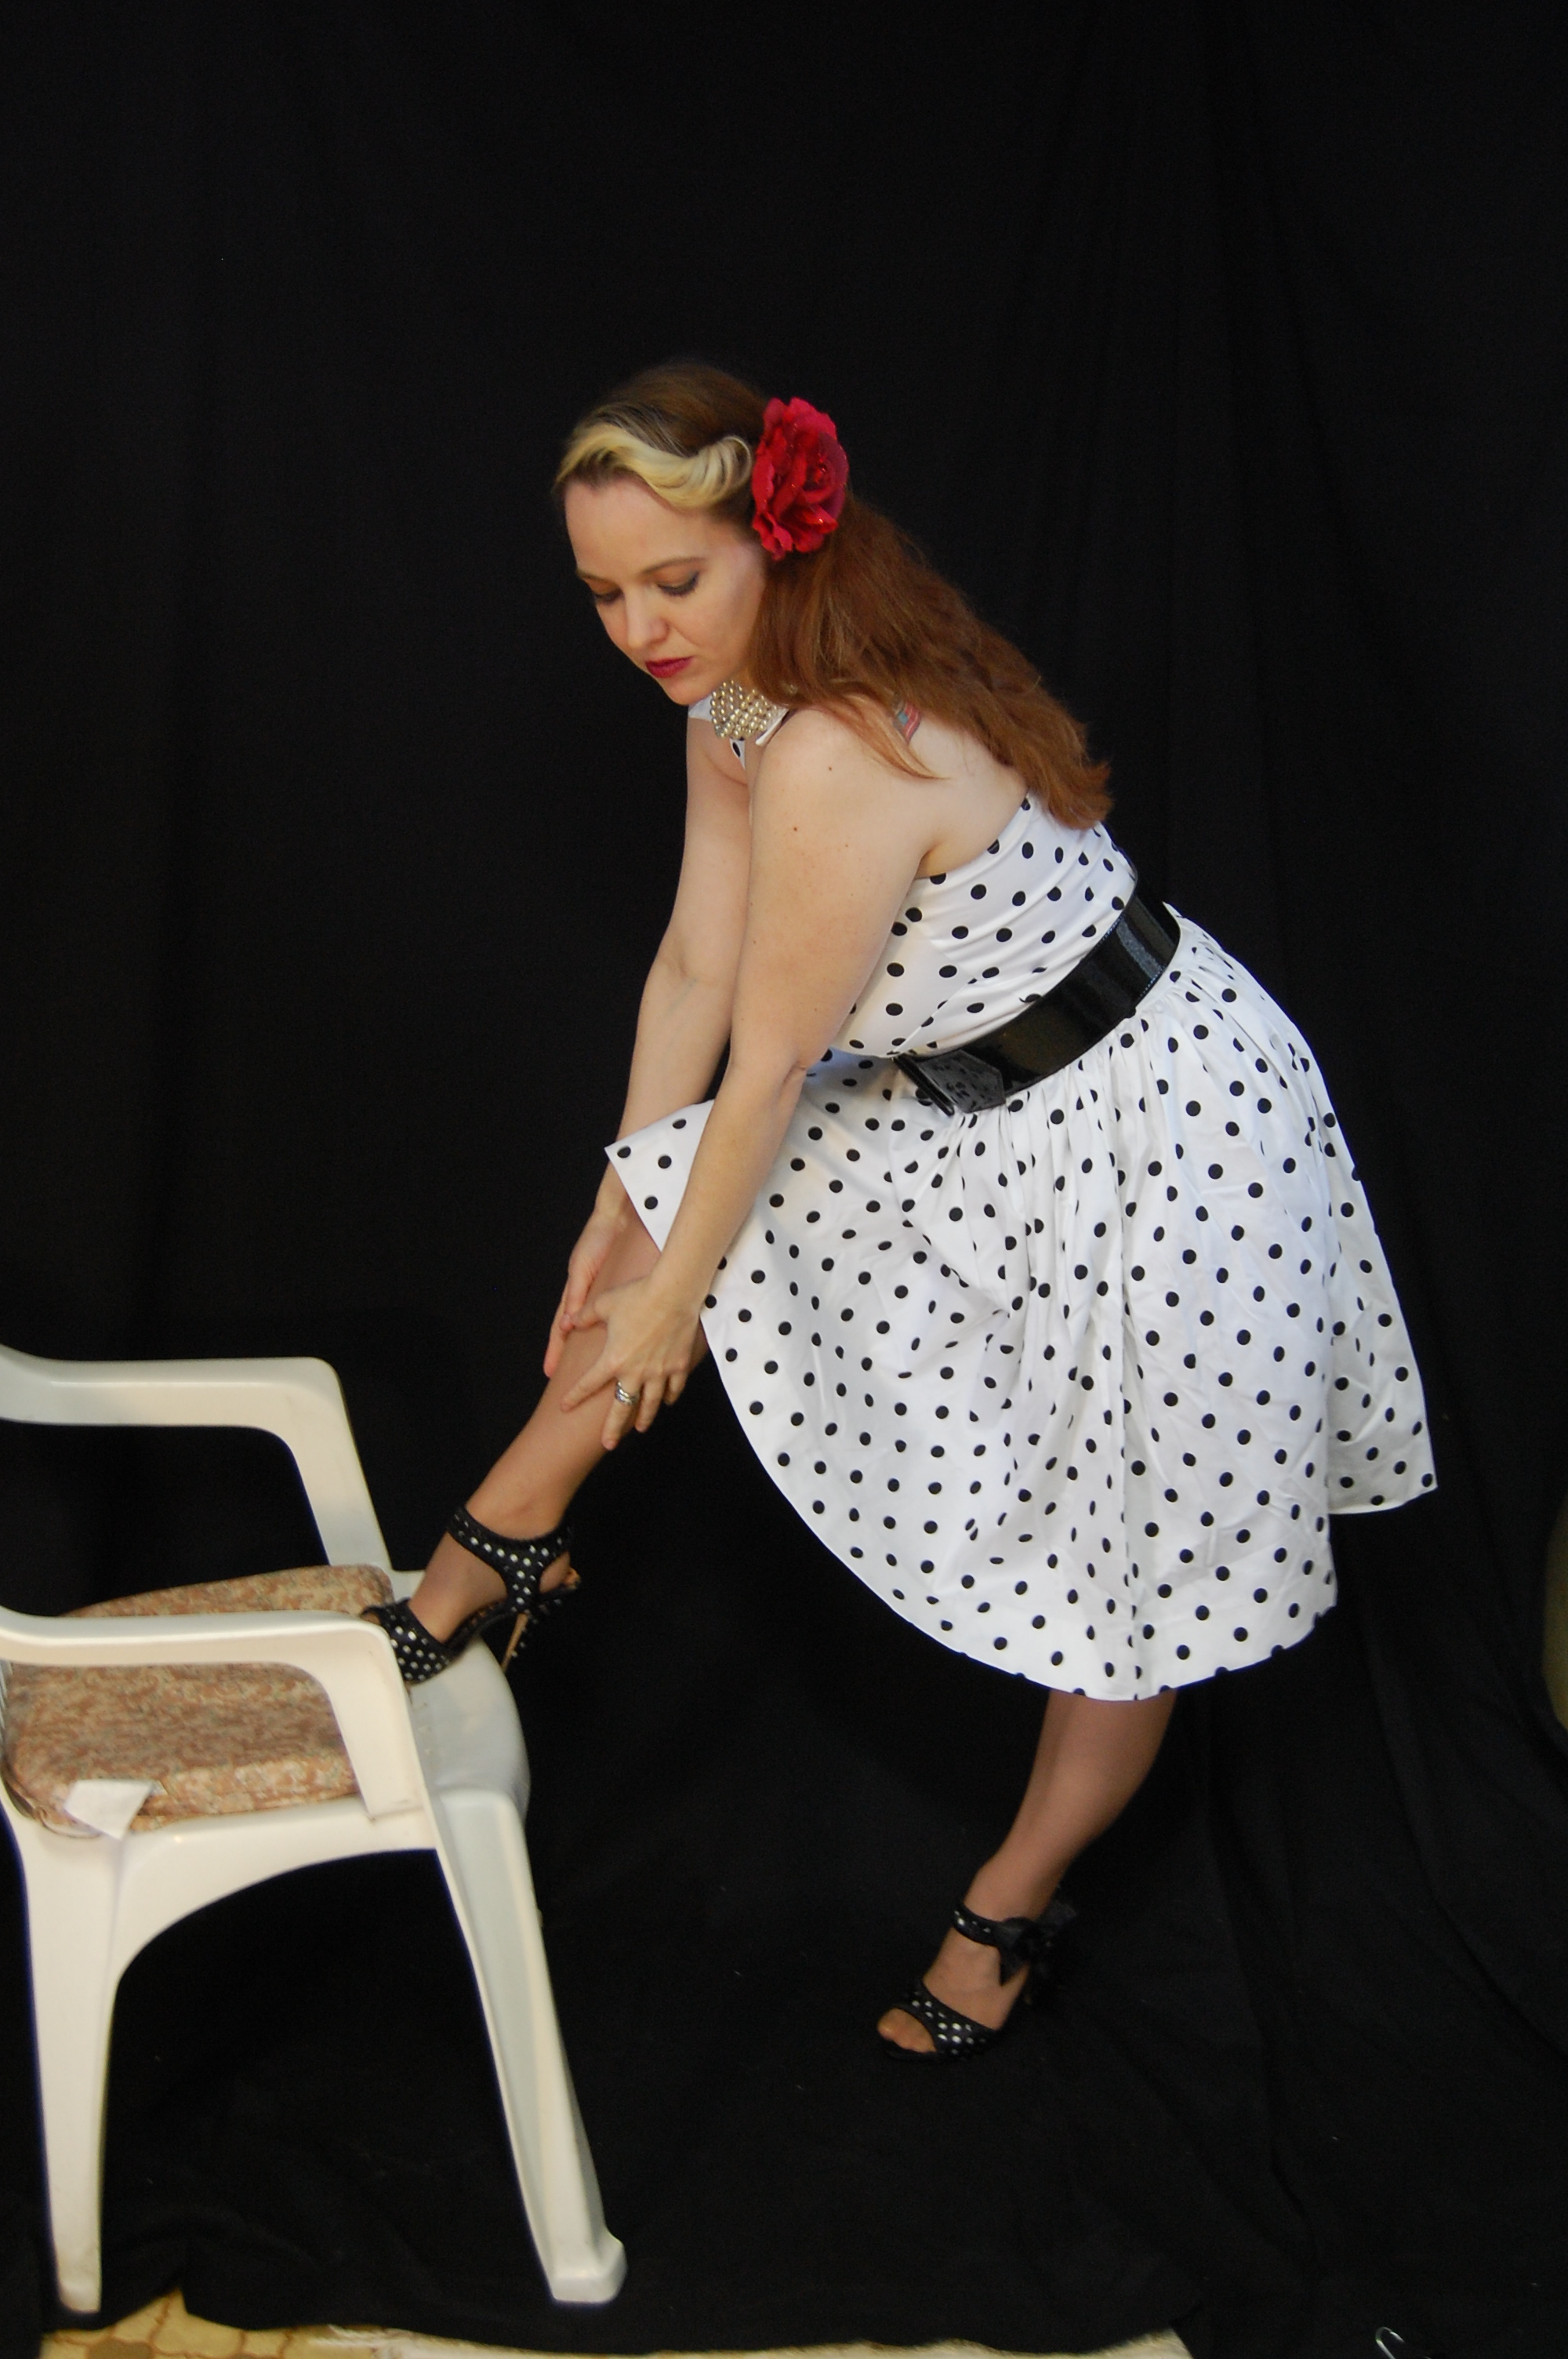 2010 Fife pinup white dress 0298